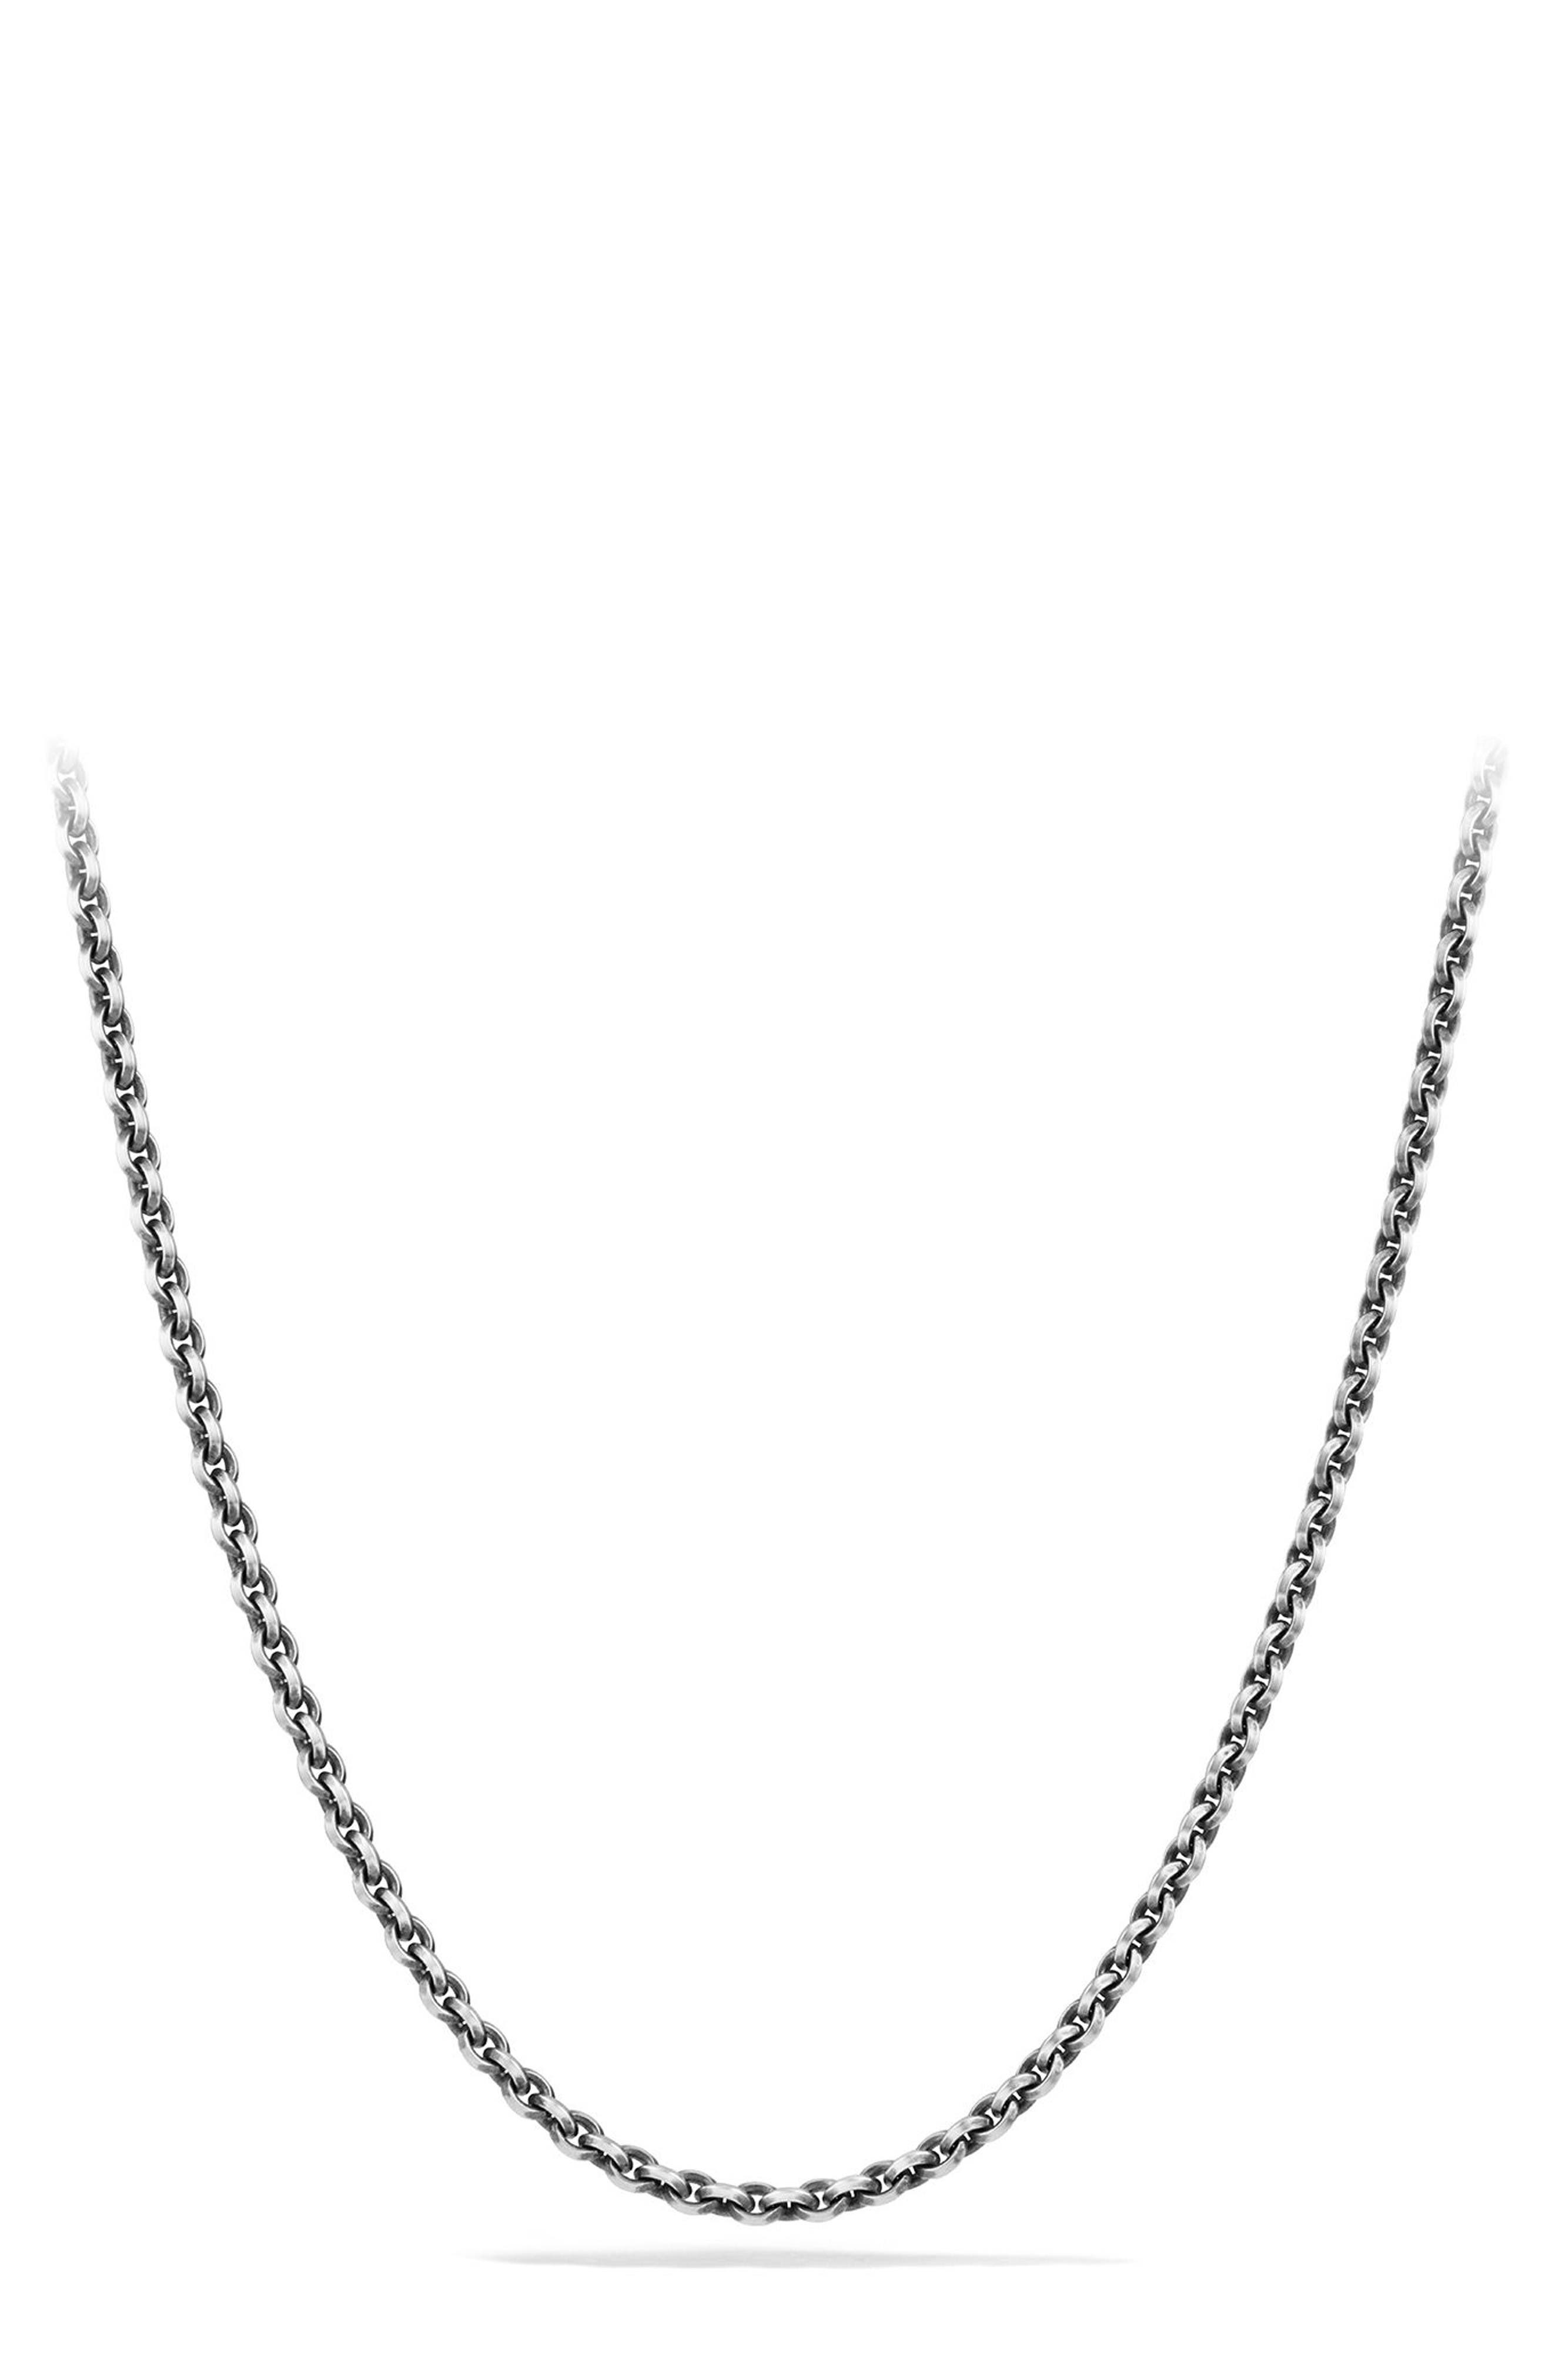 Knife Edge Chain Necklace,                         Main,                         color, Silver